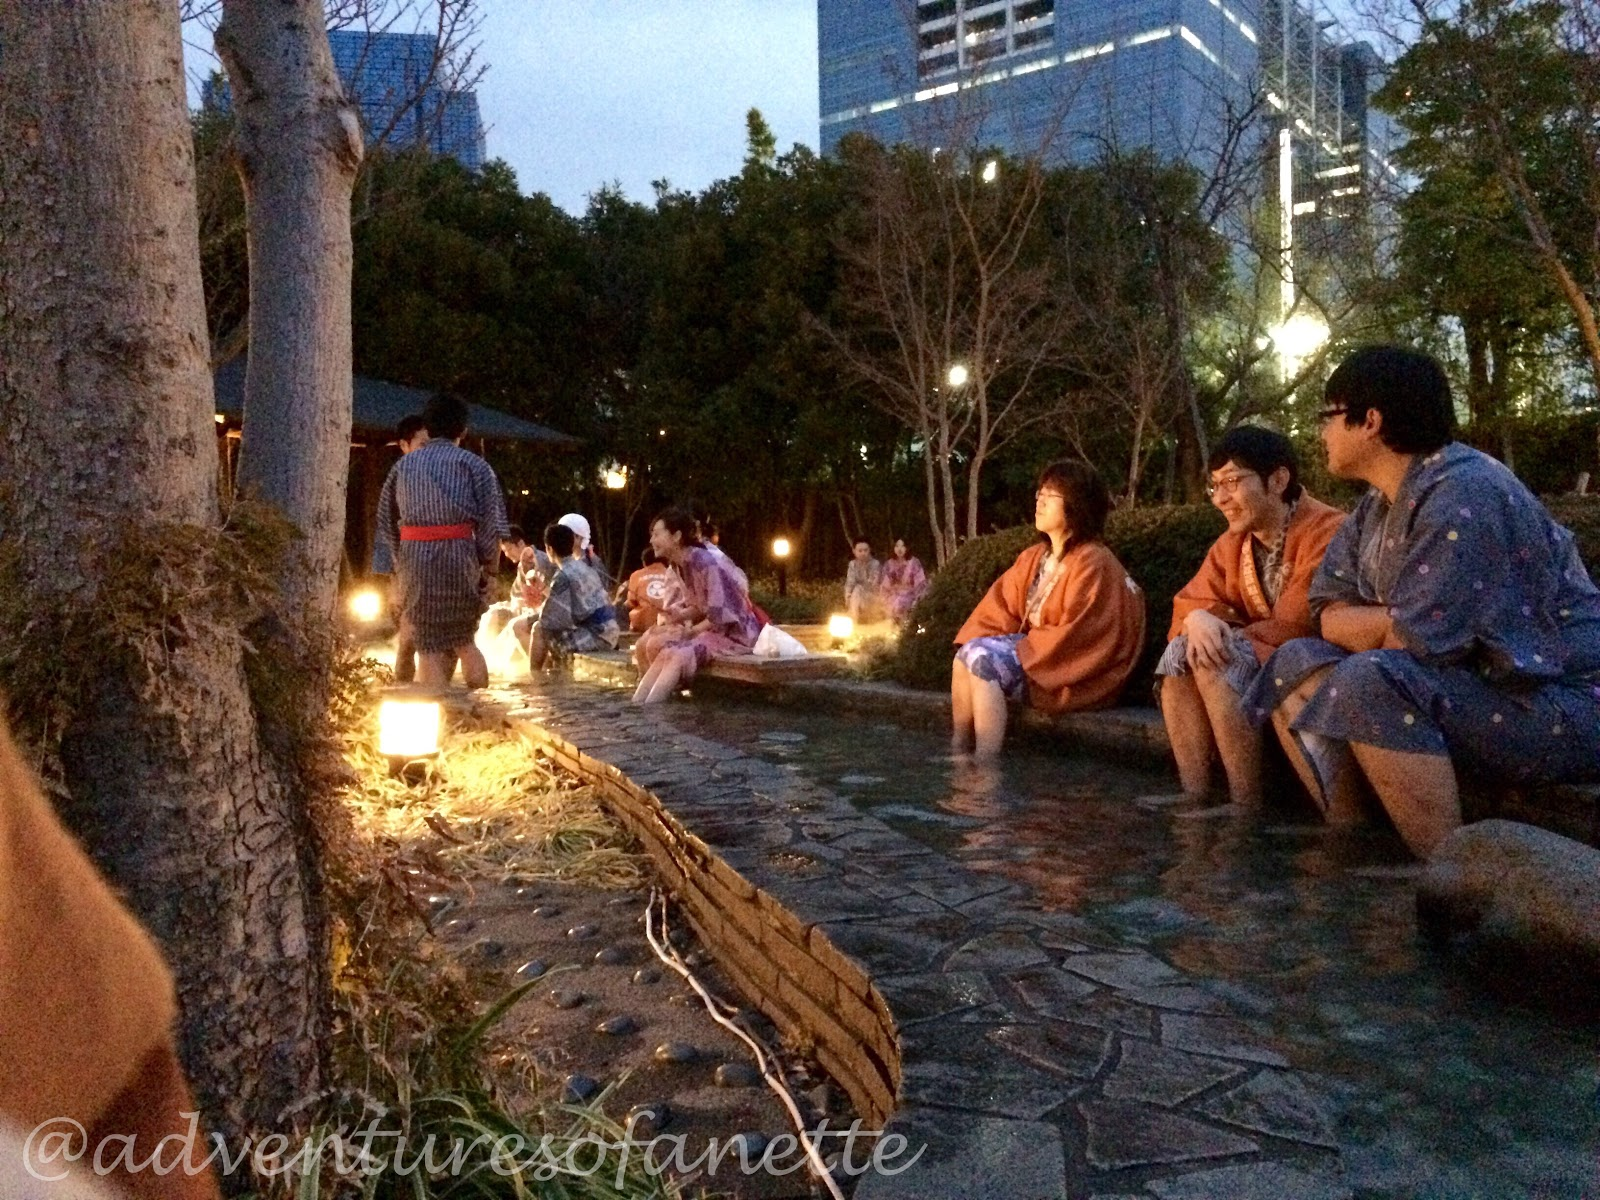 Tokyo hot spring theme parks back to edo with oedo onsen for Onsen tattoos allowed